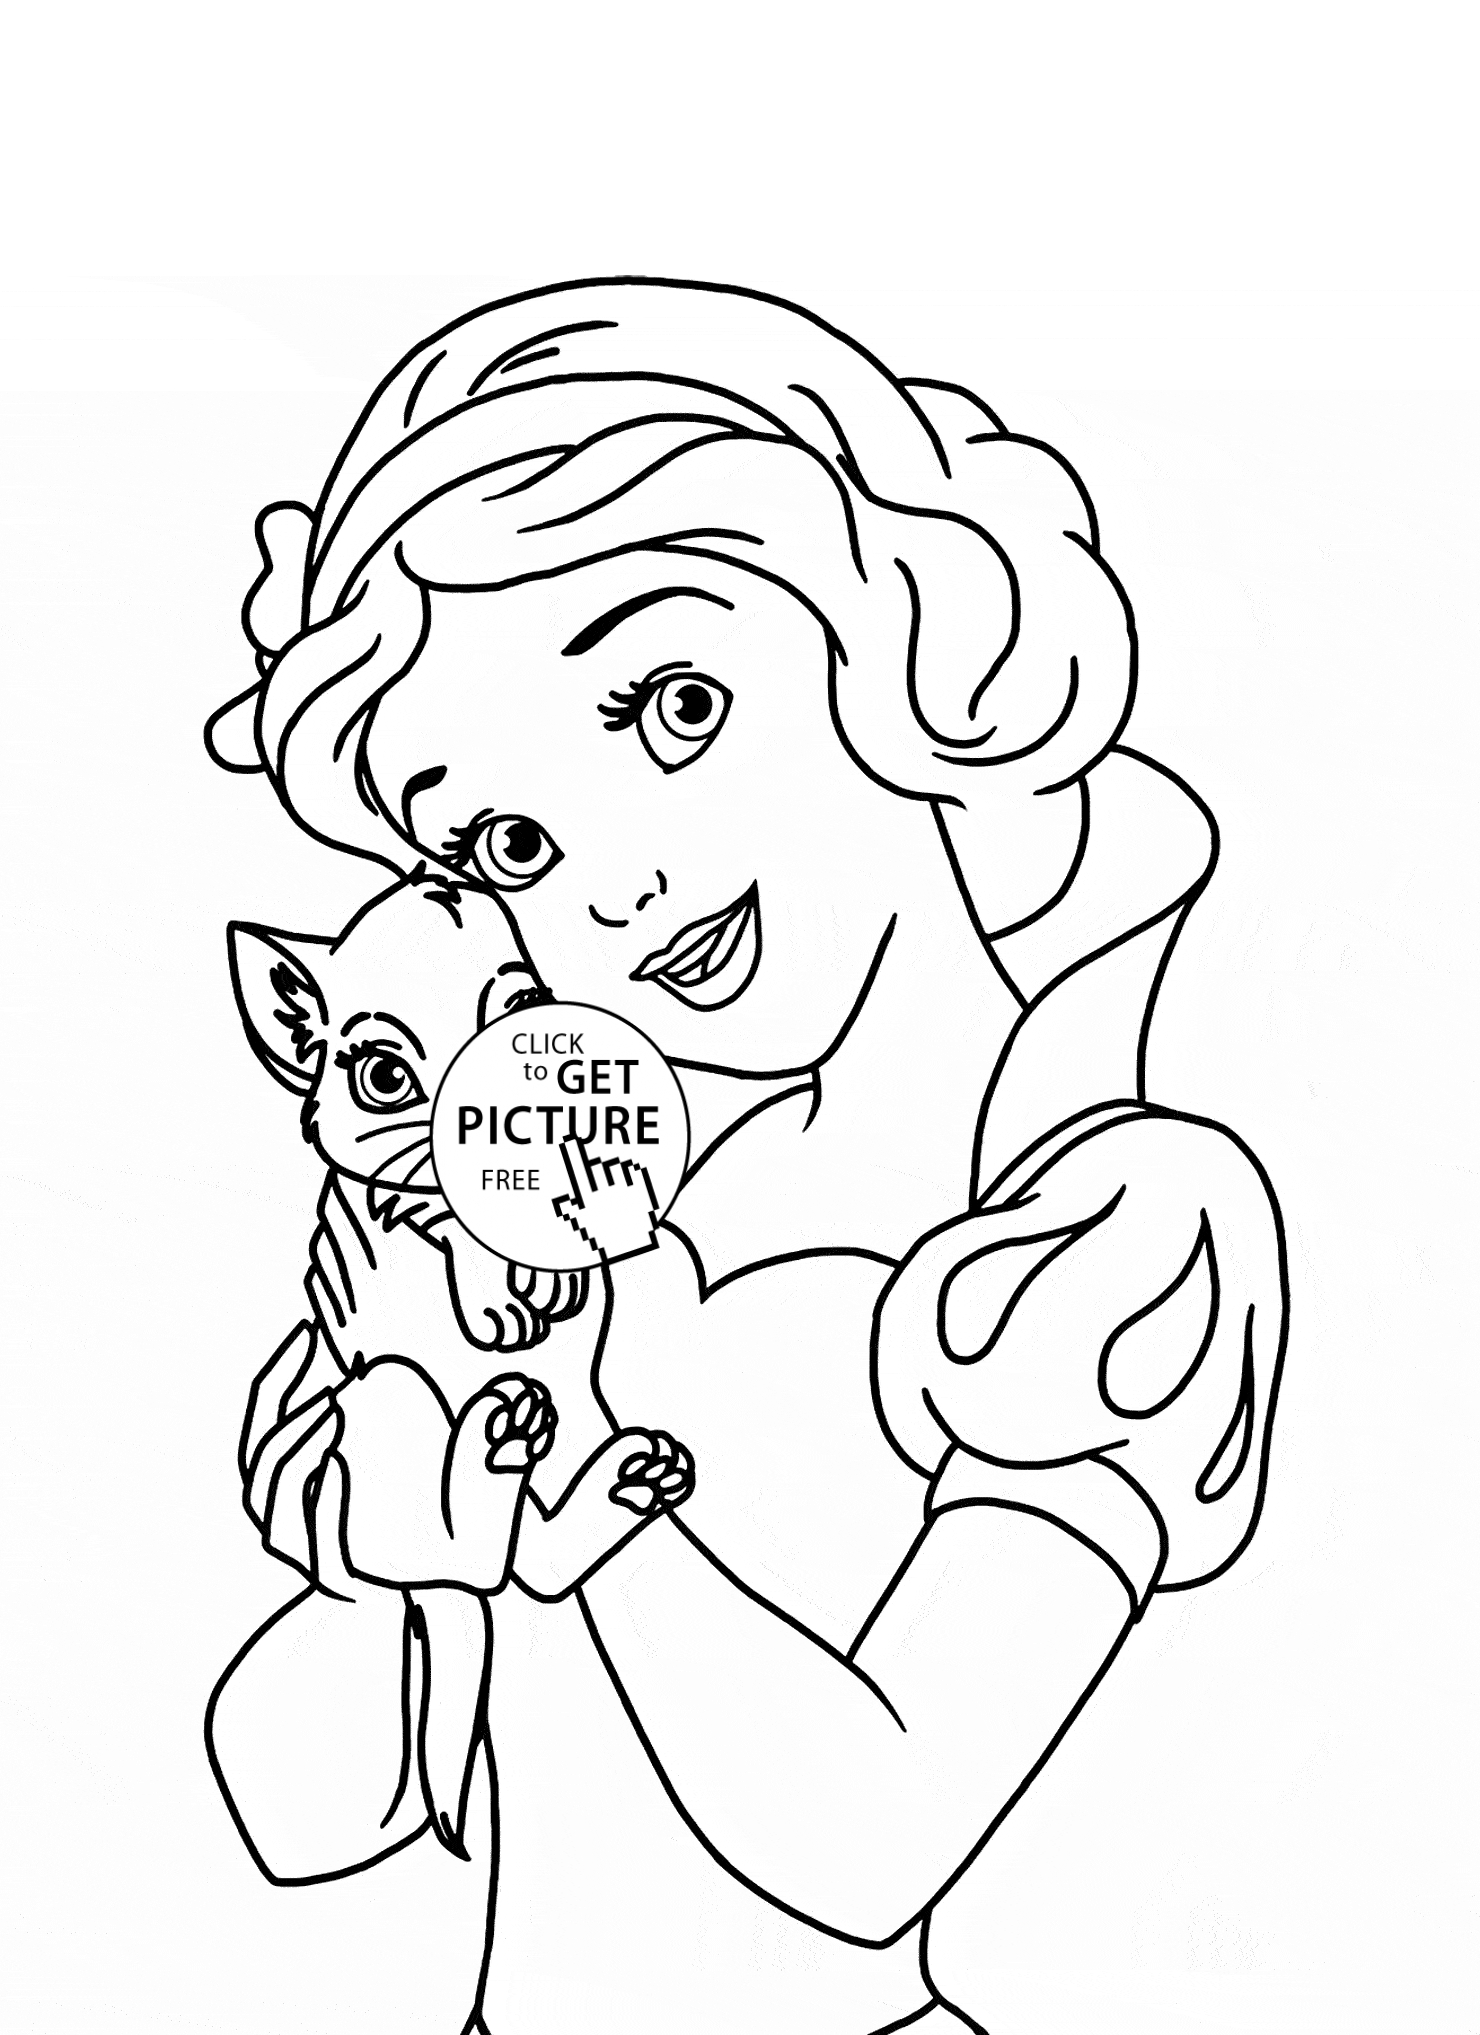 princess coloring pages to print - princess cat coloring page